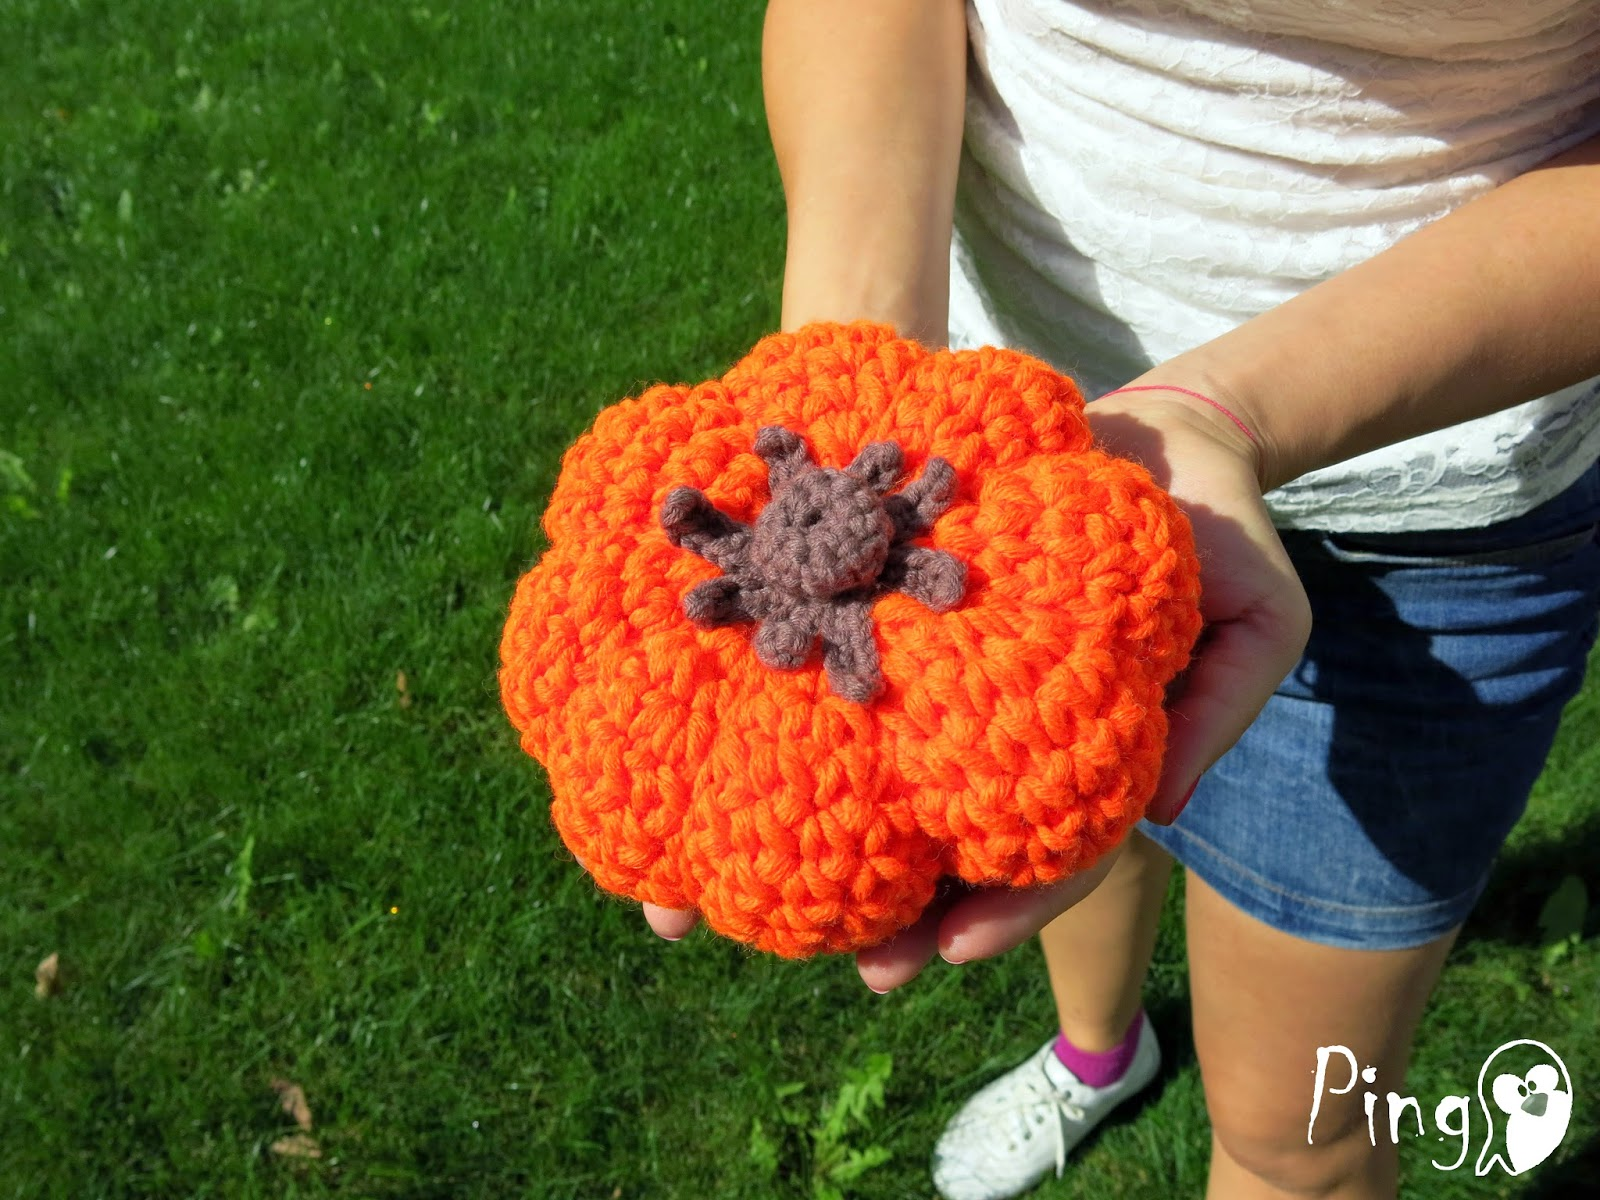 Sweet Halloween Pumpking, crochet pattern by Pingo - The Pink Penguin